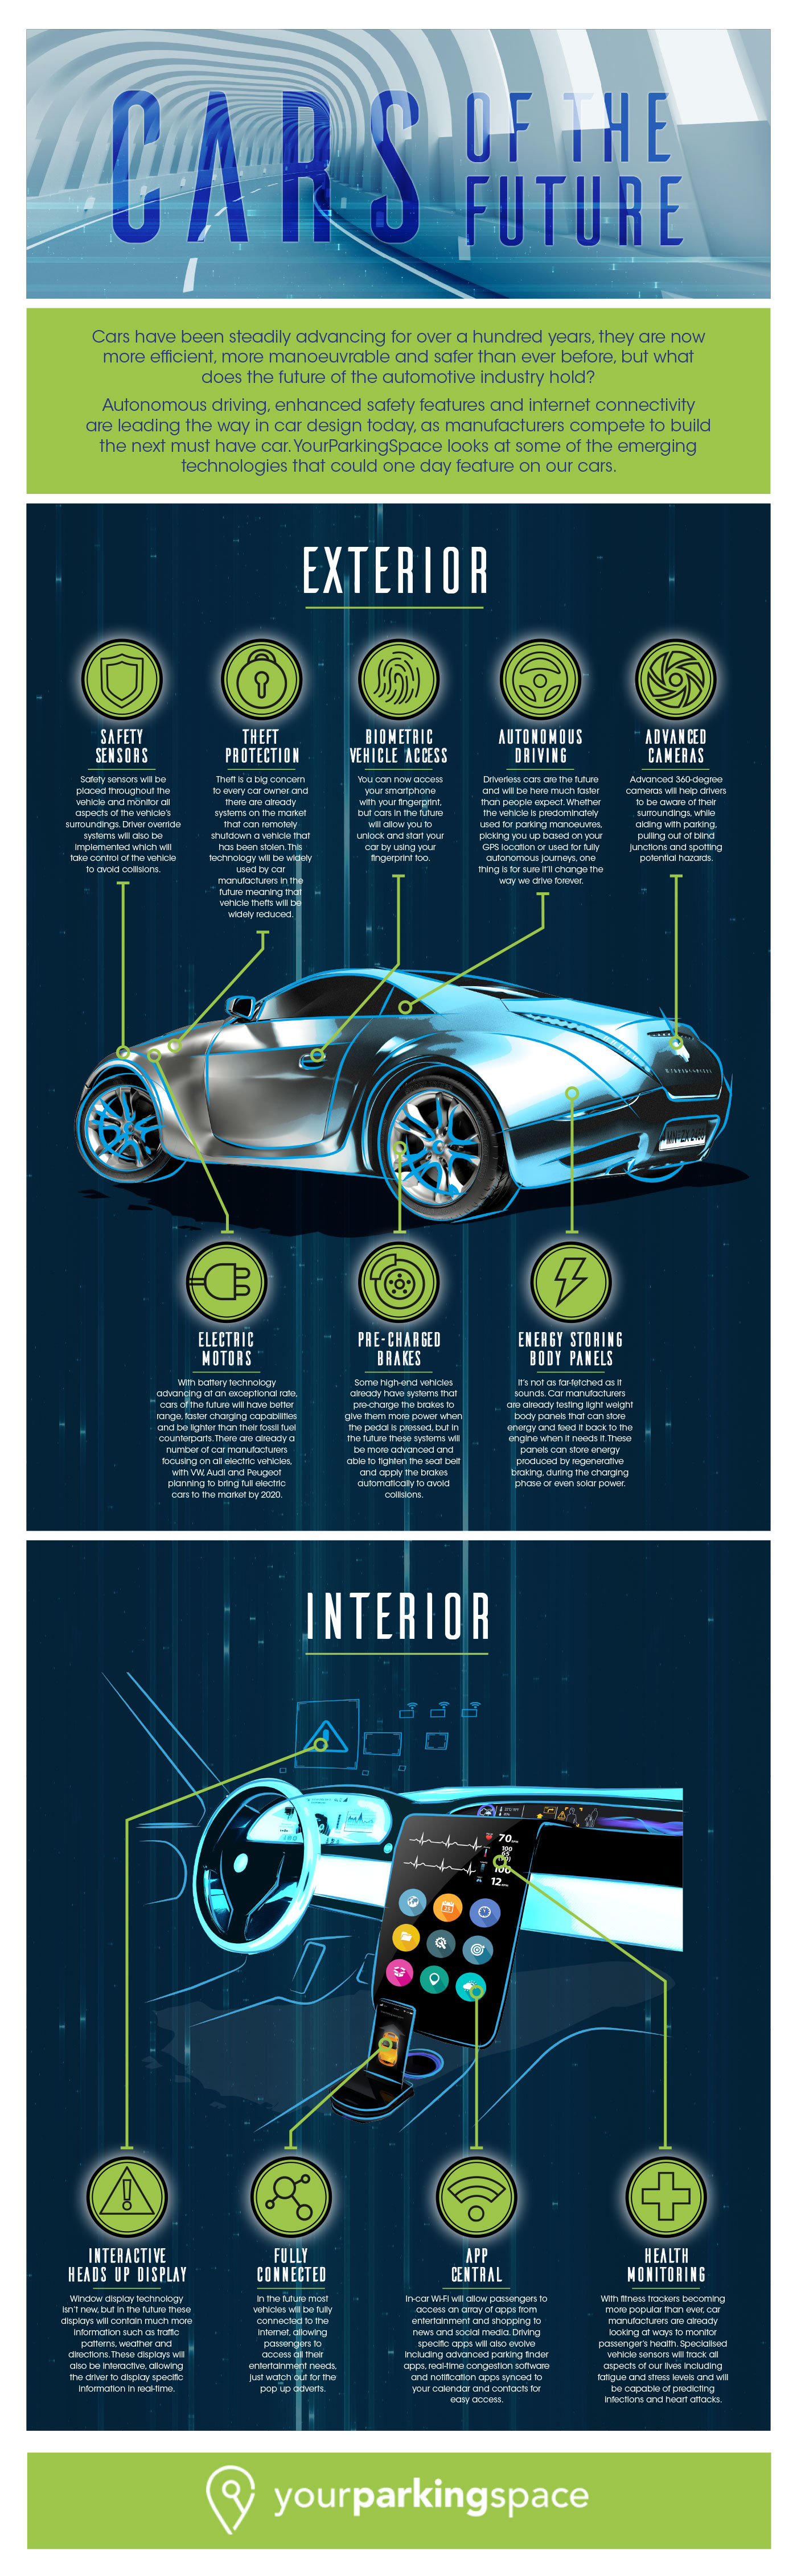 future-car-infographic